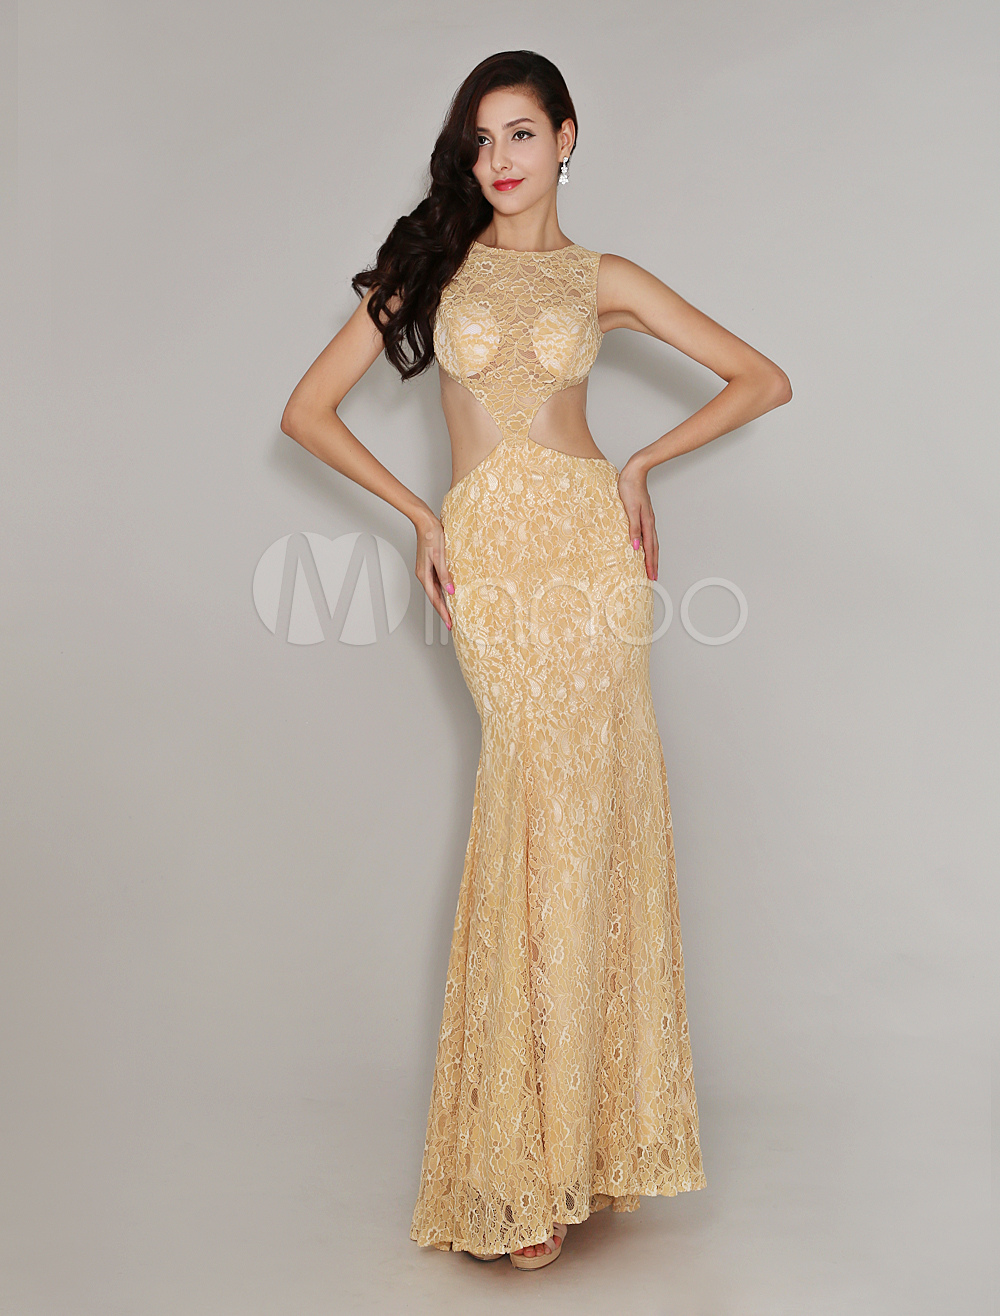 Buy Champagne Bateau Neck Sweep Lace Mermaid Evening Dress for $161.99 in Milanoo store